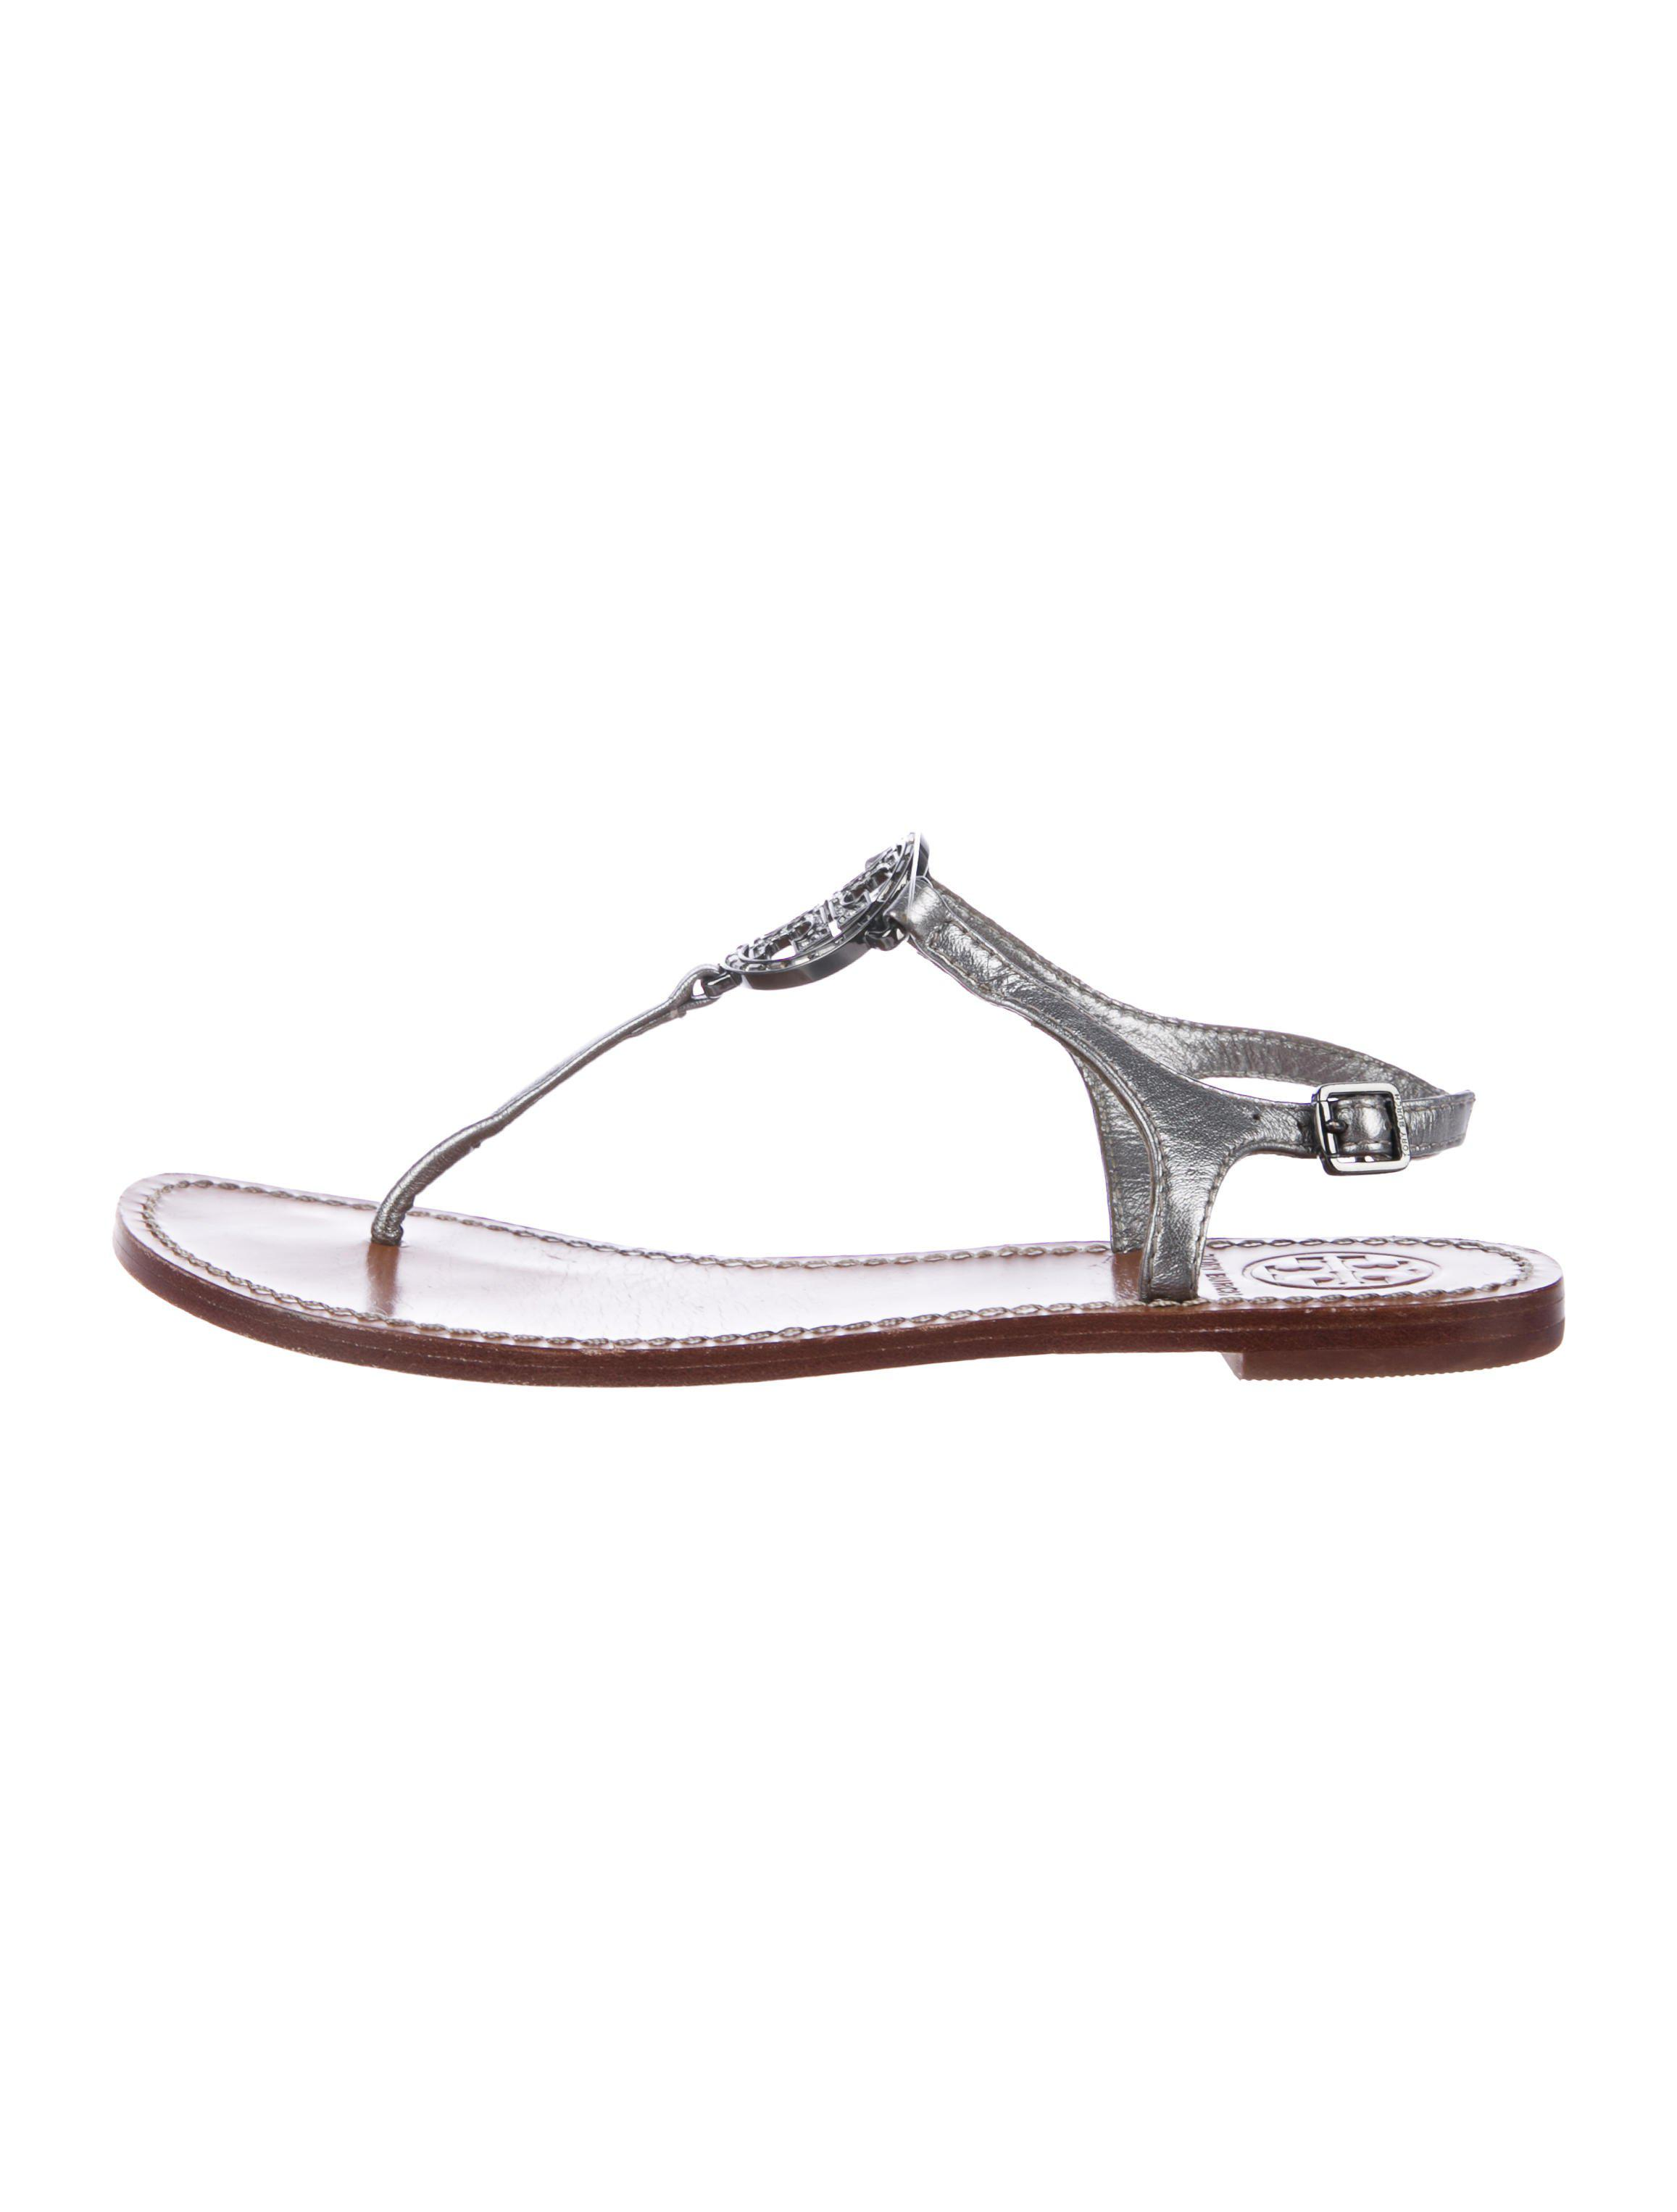 de99125a1b83 Lyst - Tory Burch Leather Logo Thong Sandals Silver in Metallic